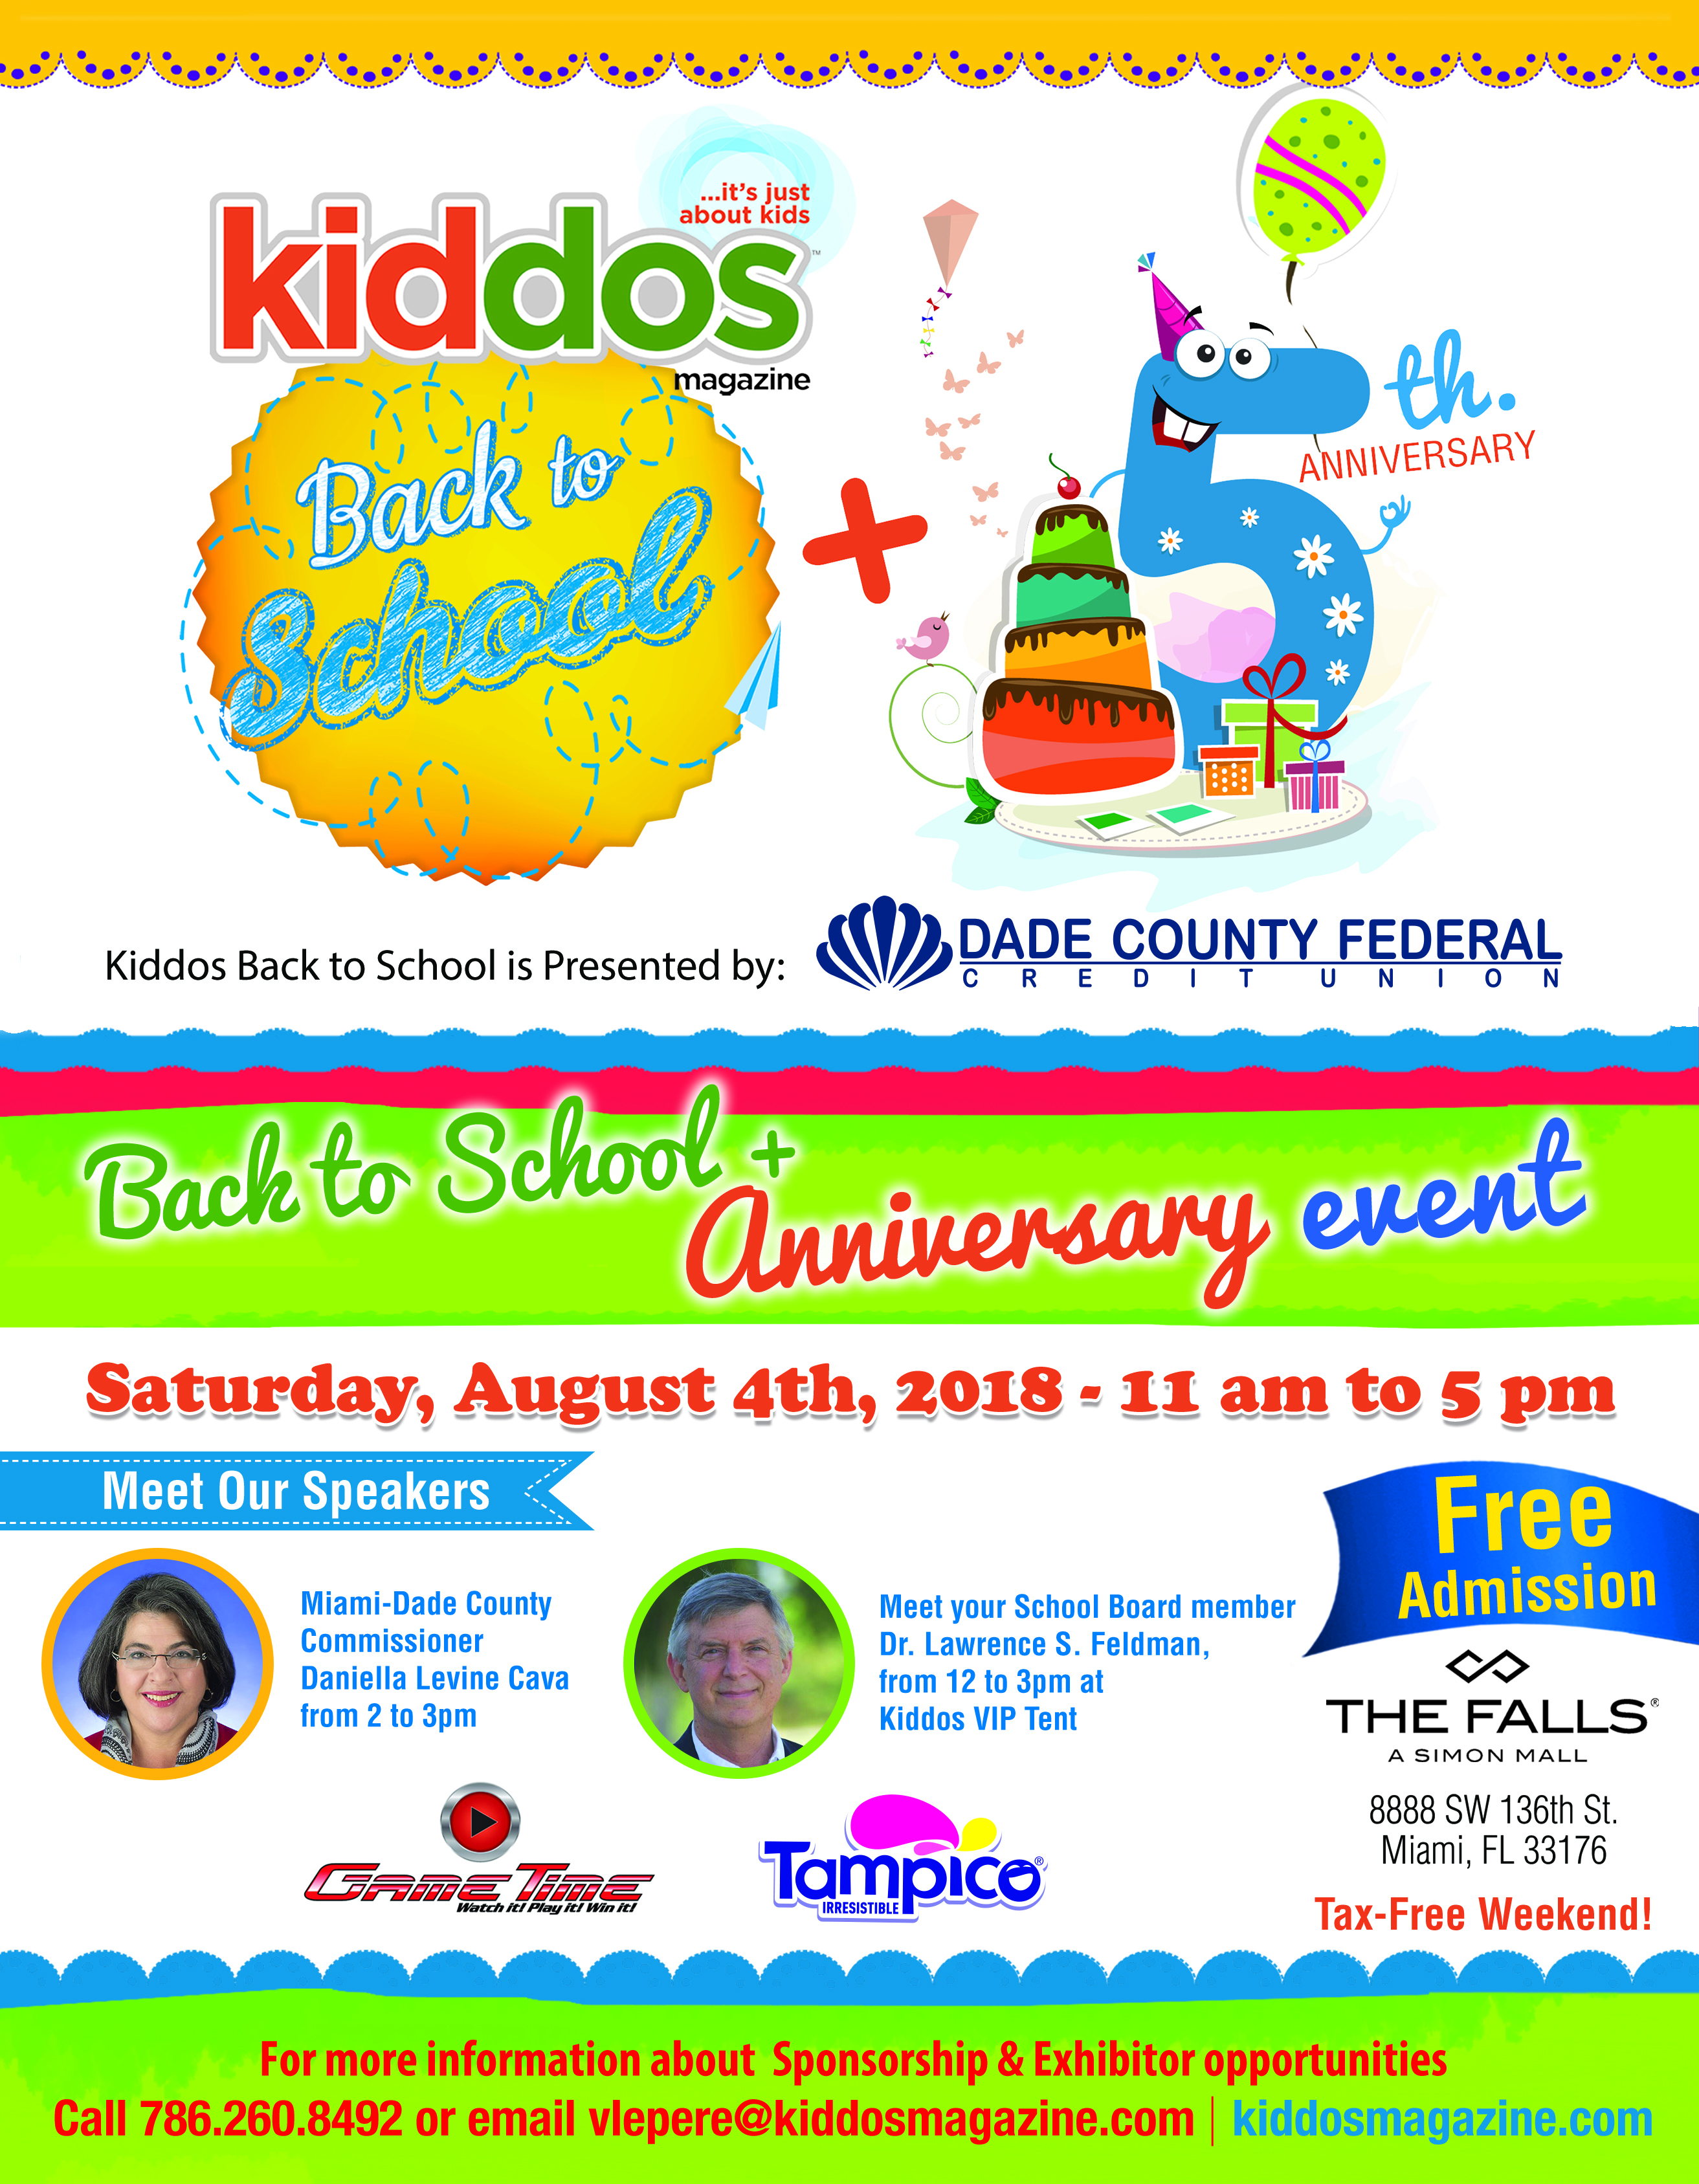 Let's get everyone ready for school!!! Kiddos Back-to-School & 5th Anniversary event brings more than 3,000 attendees, one day filled with arts and craft activities, face painting, balloon artist, science and art projects, safety, storytelling, sports demonstrations, dance, shows, characters, food, goodie bags, music, raffles and much more! Featuring over 50 exhibitors that will offer the latest in products and entertainment for kids, pre-teens, and parents.